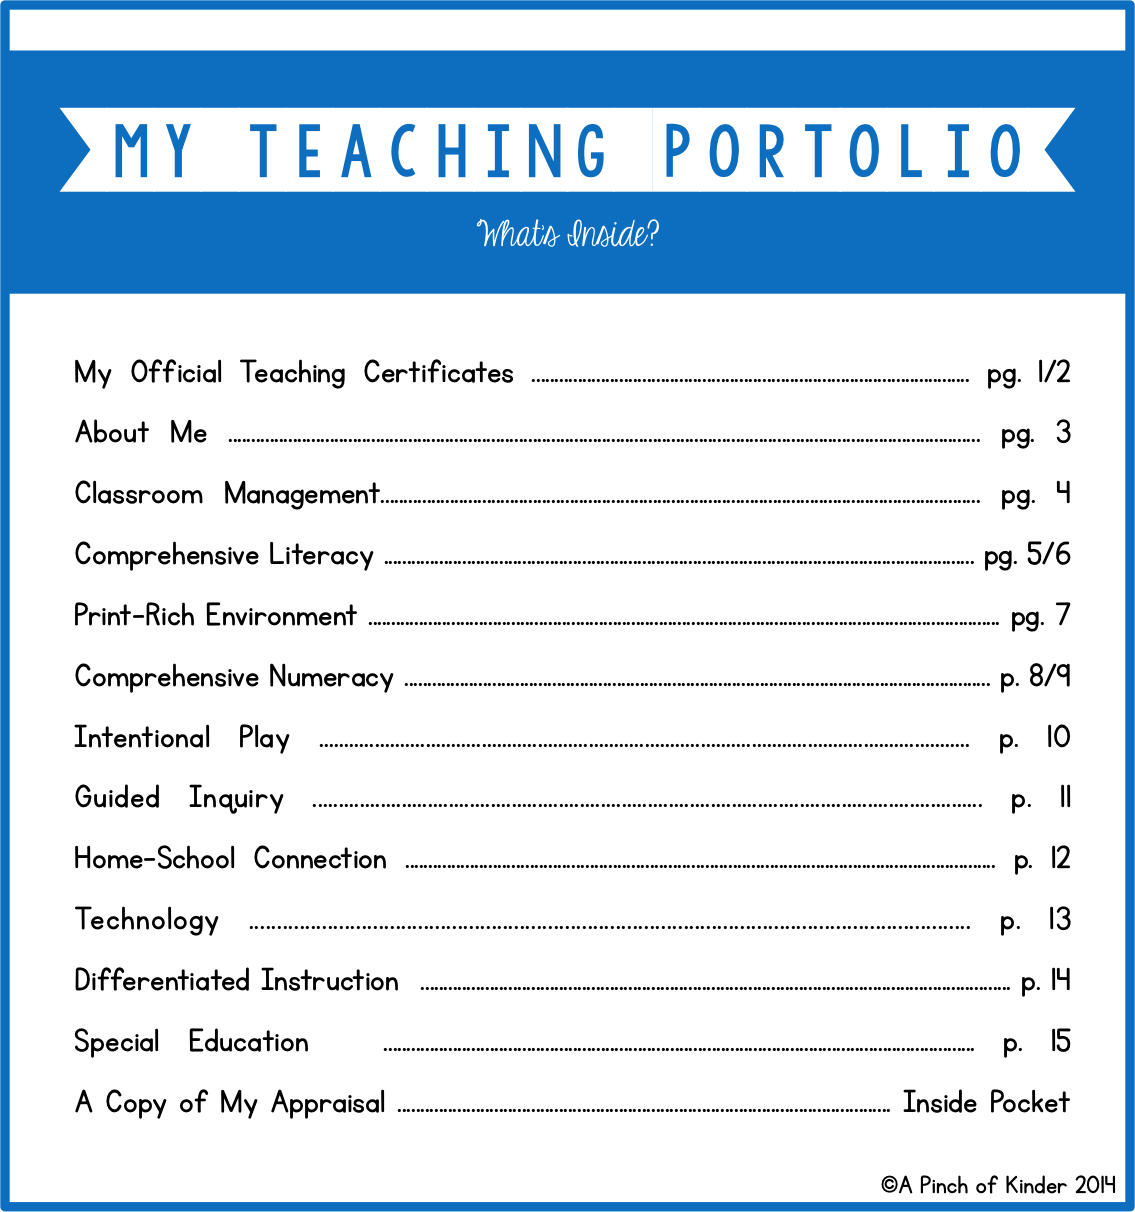 professional teaching portfolio template getting a teaching job my teaching portfolio a pinch of